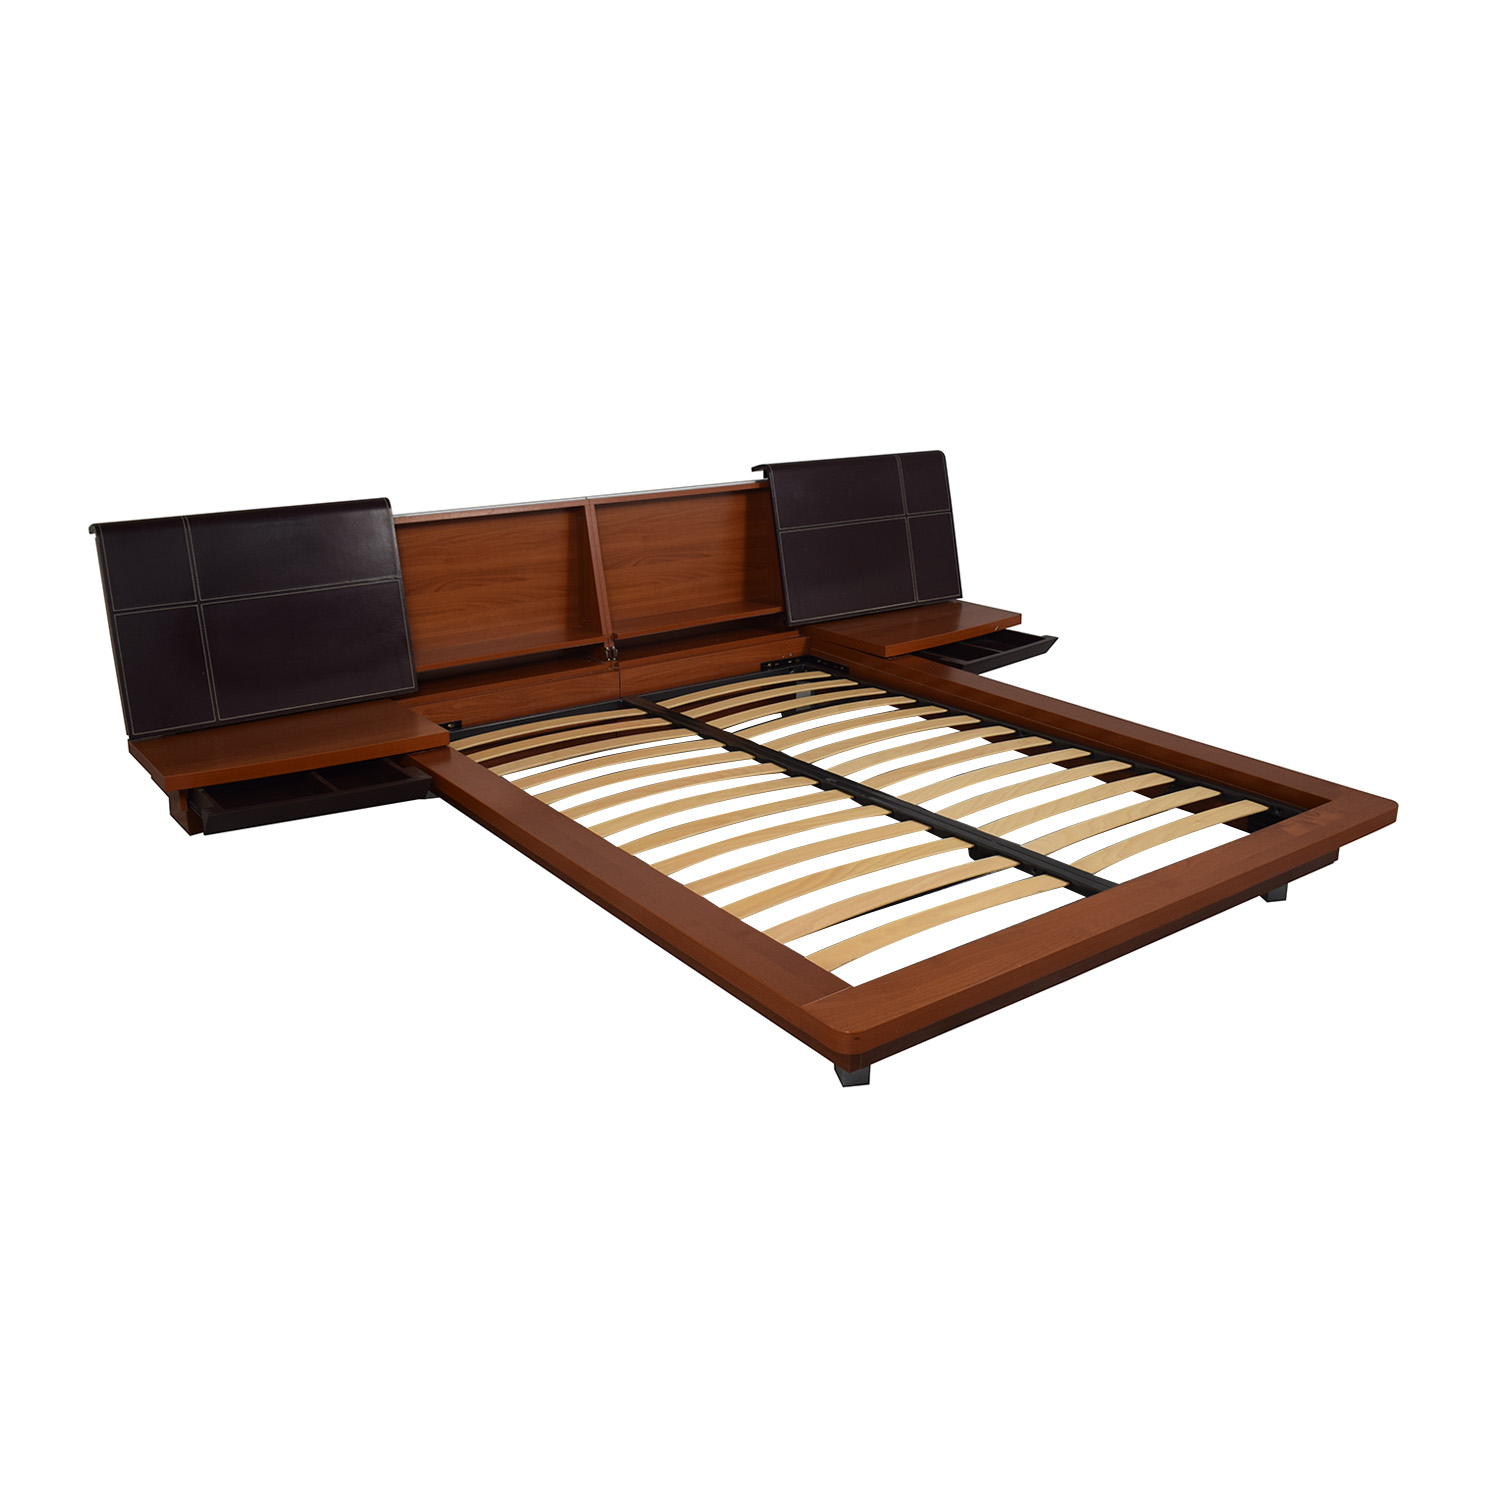 53% OFF   Queen Platform Bed Frame with attached End Tables / Beds